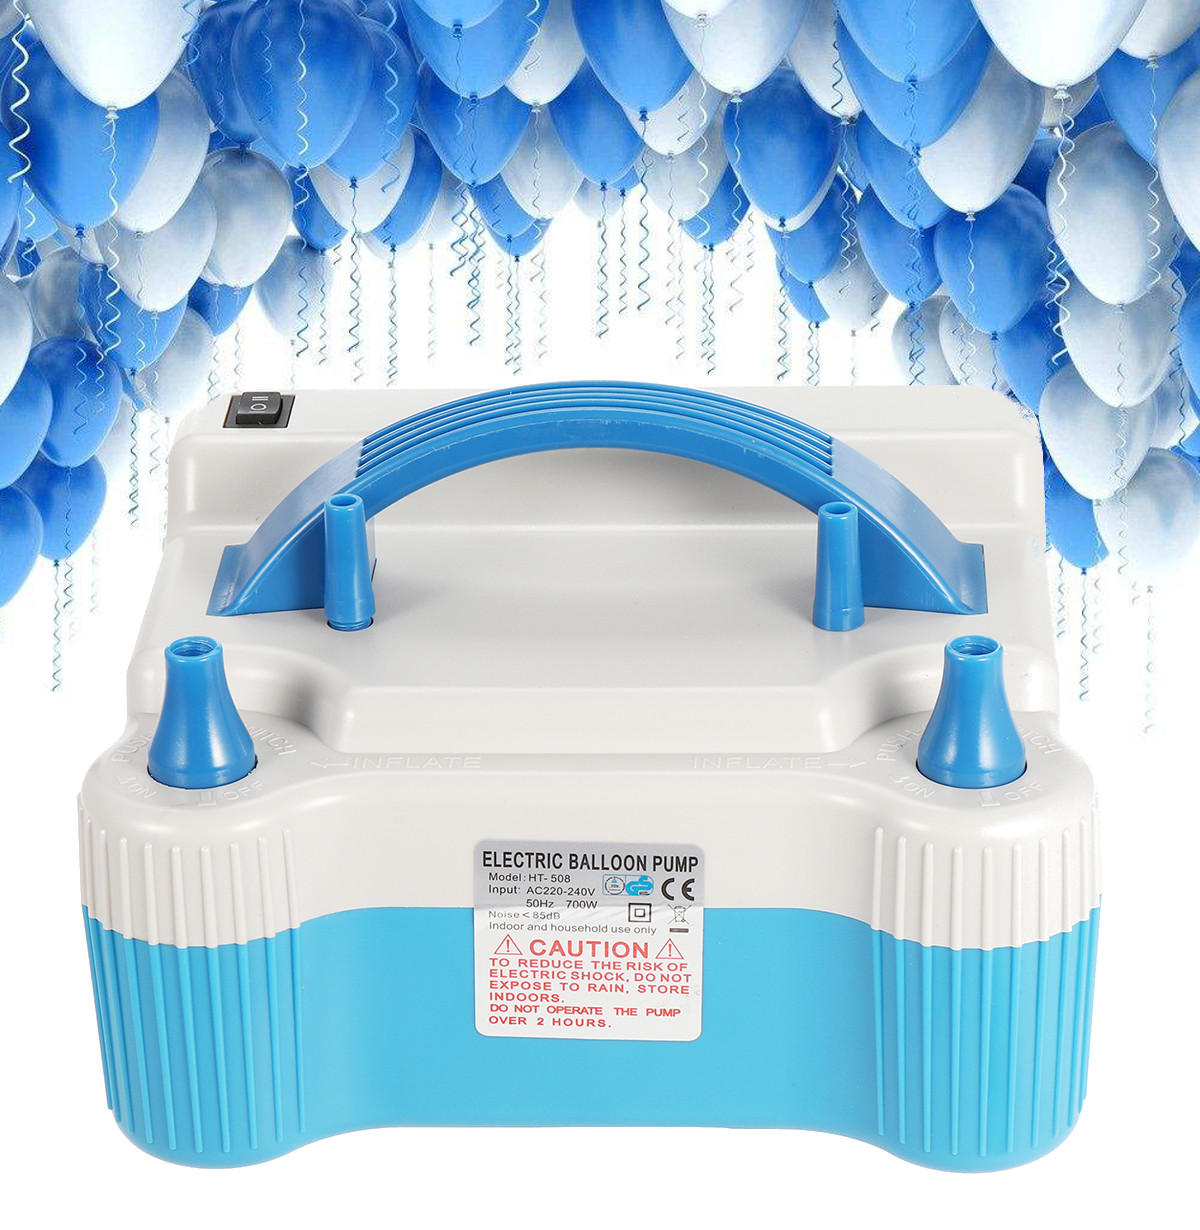 700W 220V Dual Tip Electric Balloon Air Pump Portable Inflator Blower Wedding Party